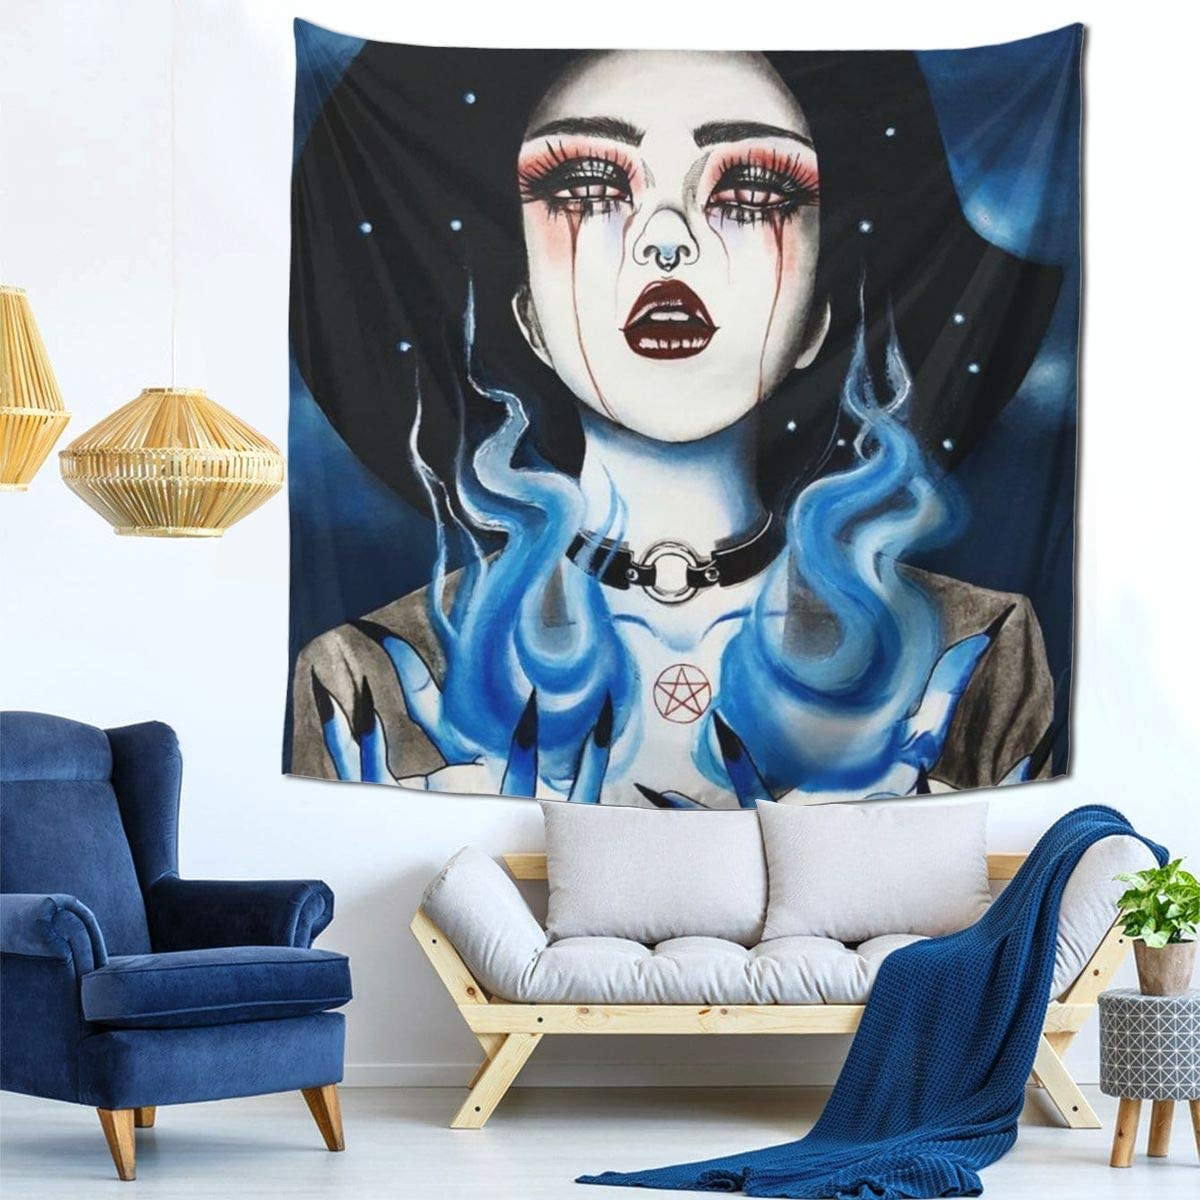 Confident Gothic Women Girl Wall Hanging Tapestry - Home Indian Decor Retro Art Online Discount